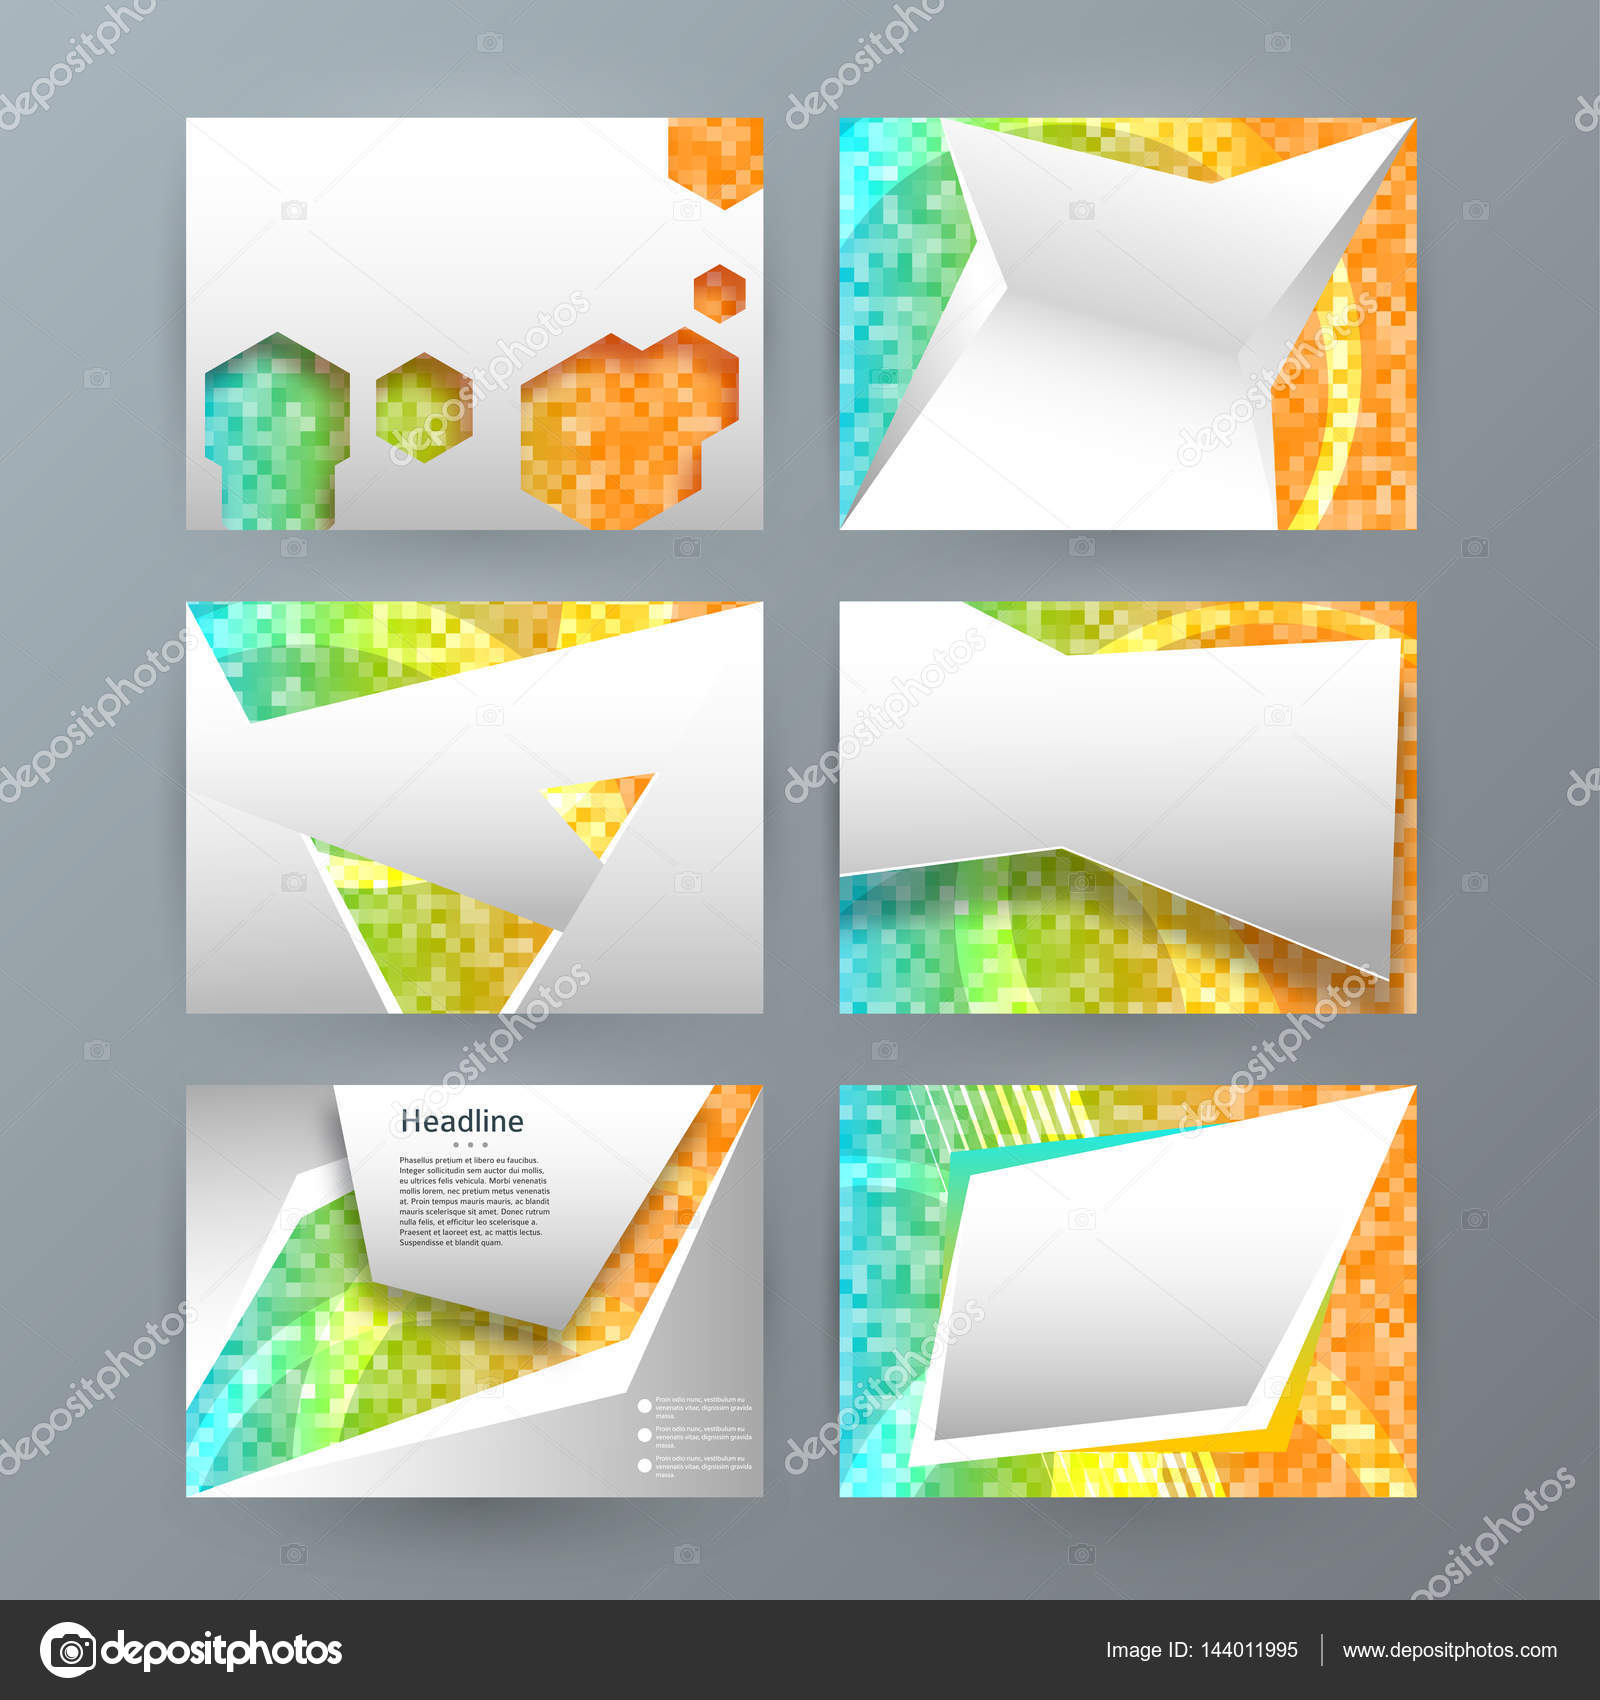 design elements presentation template set horizontal banners background mosaic glow light effect vector illustration eps 10 for brochure template